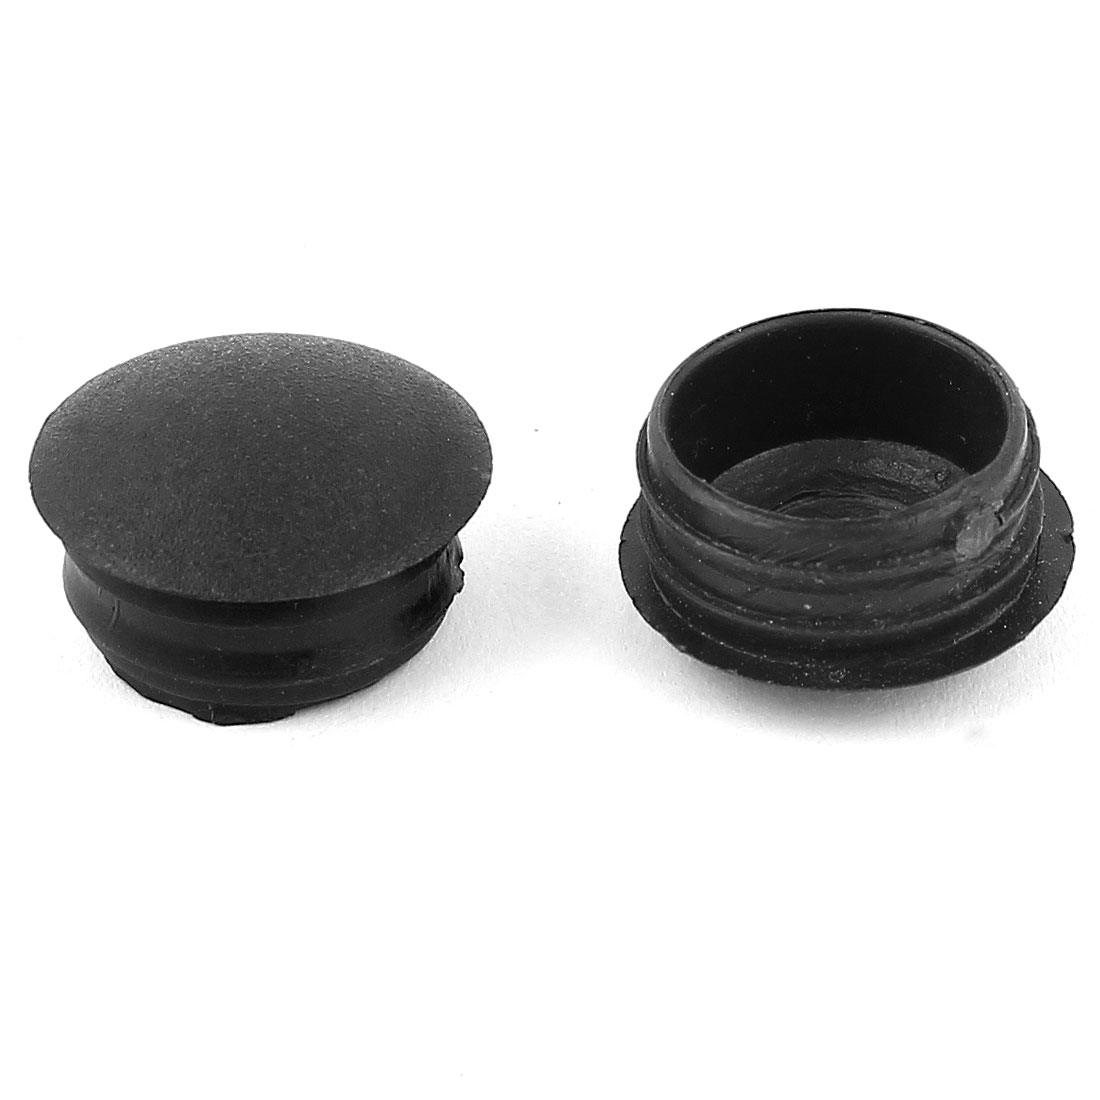 2 Pieces Black Plastic 16mm Dia Thread Round Blanking End Caps Tubing Tube Inserts